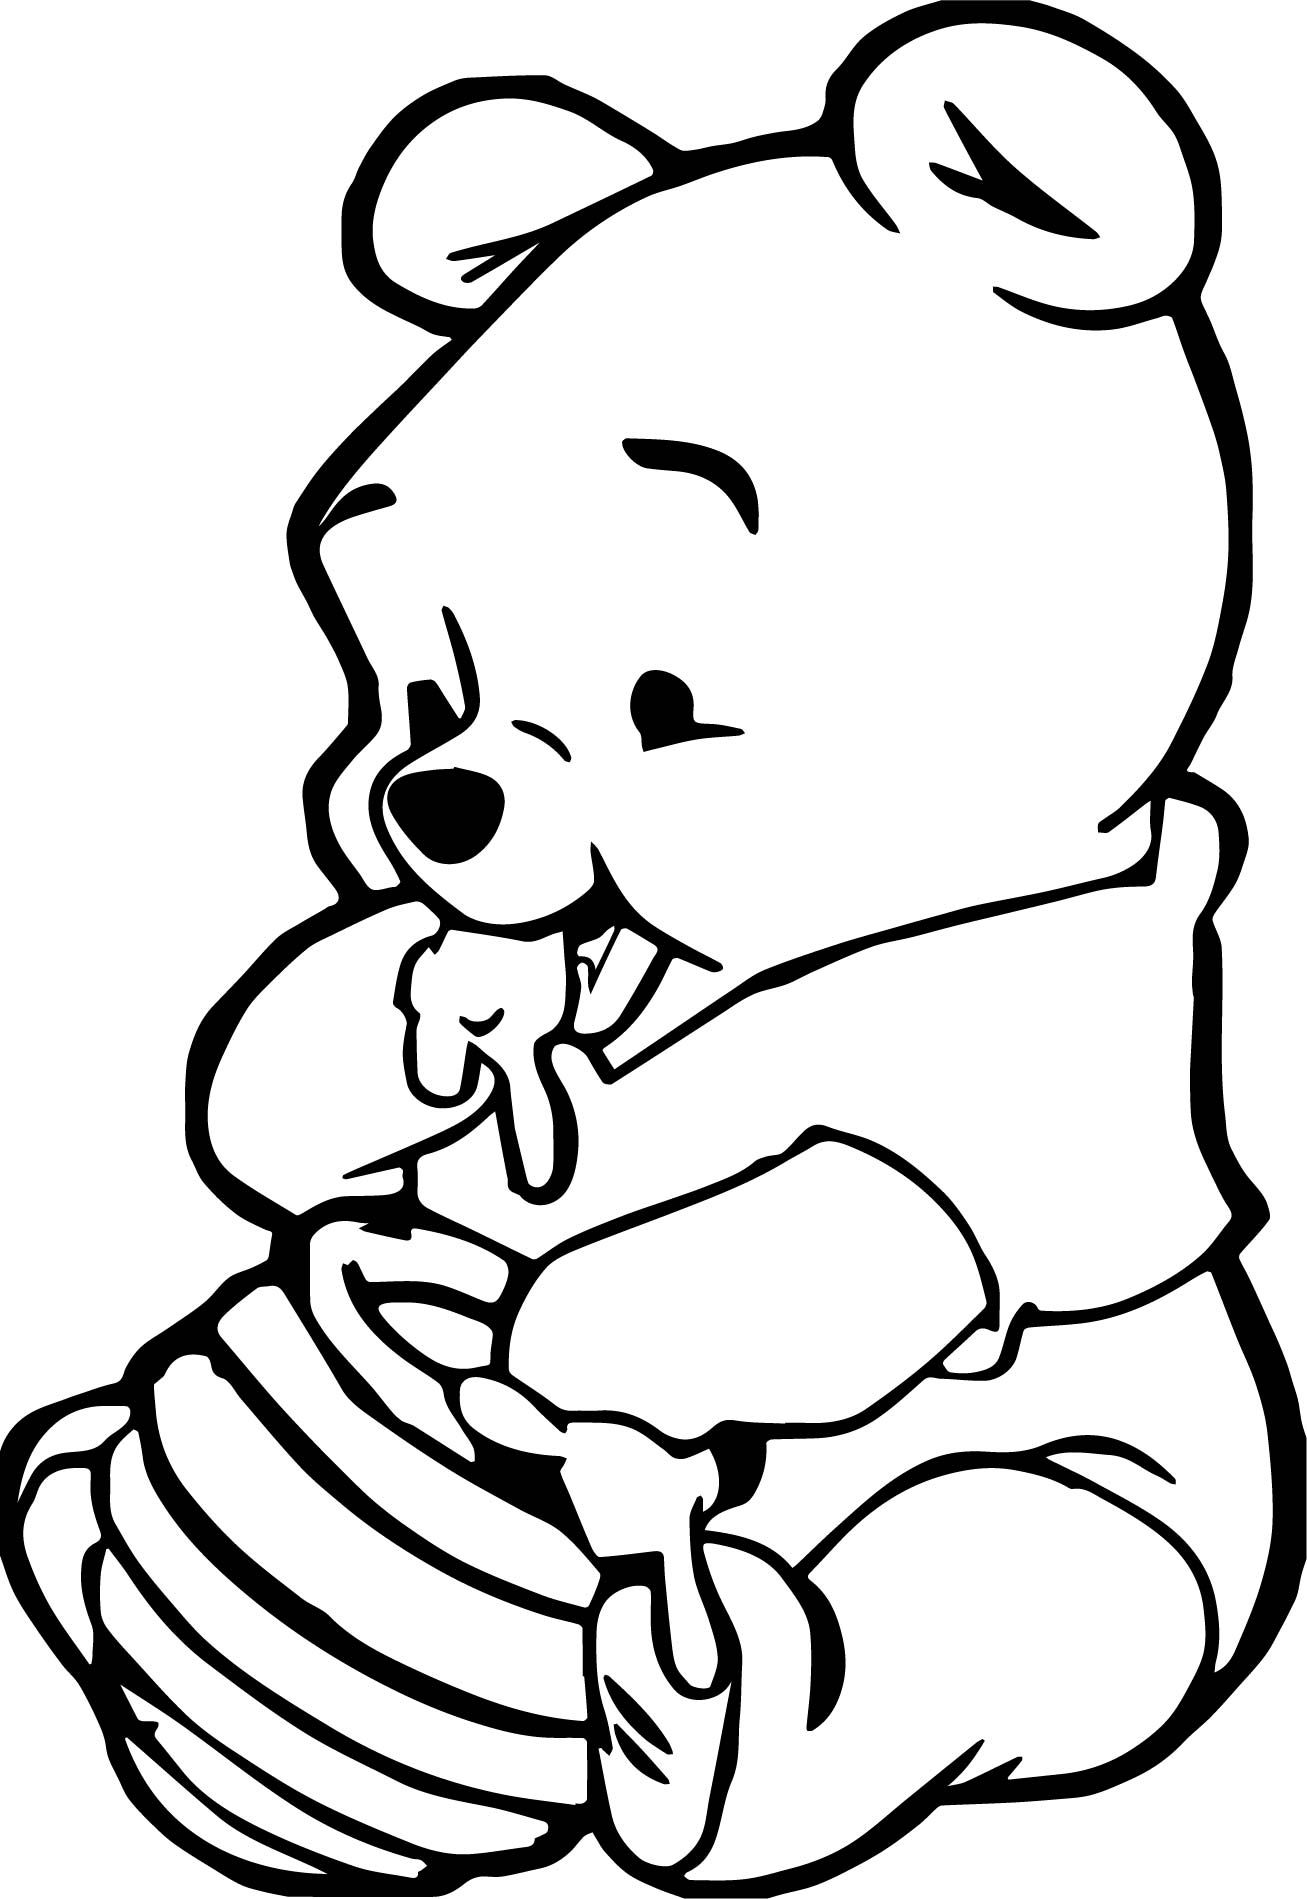 Awesome Cute Baby Winnie The Pooh Eating Hunny Coloring